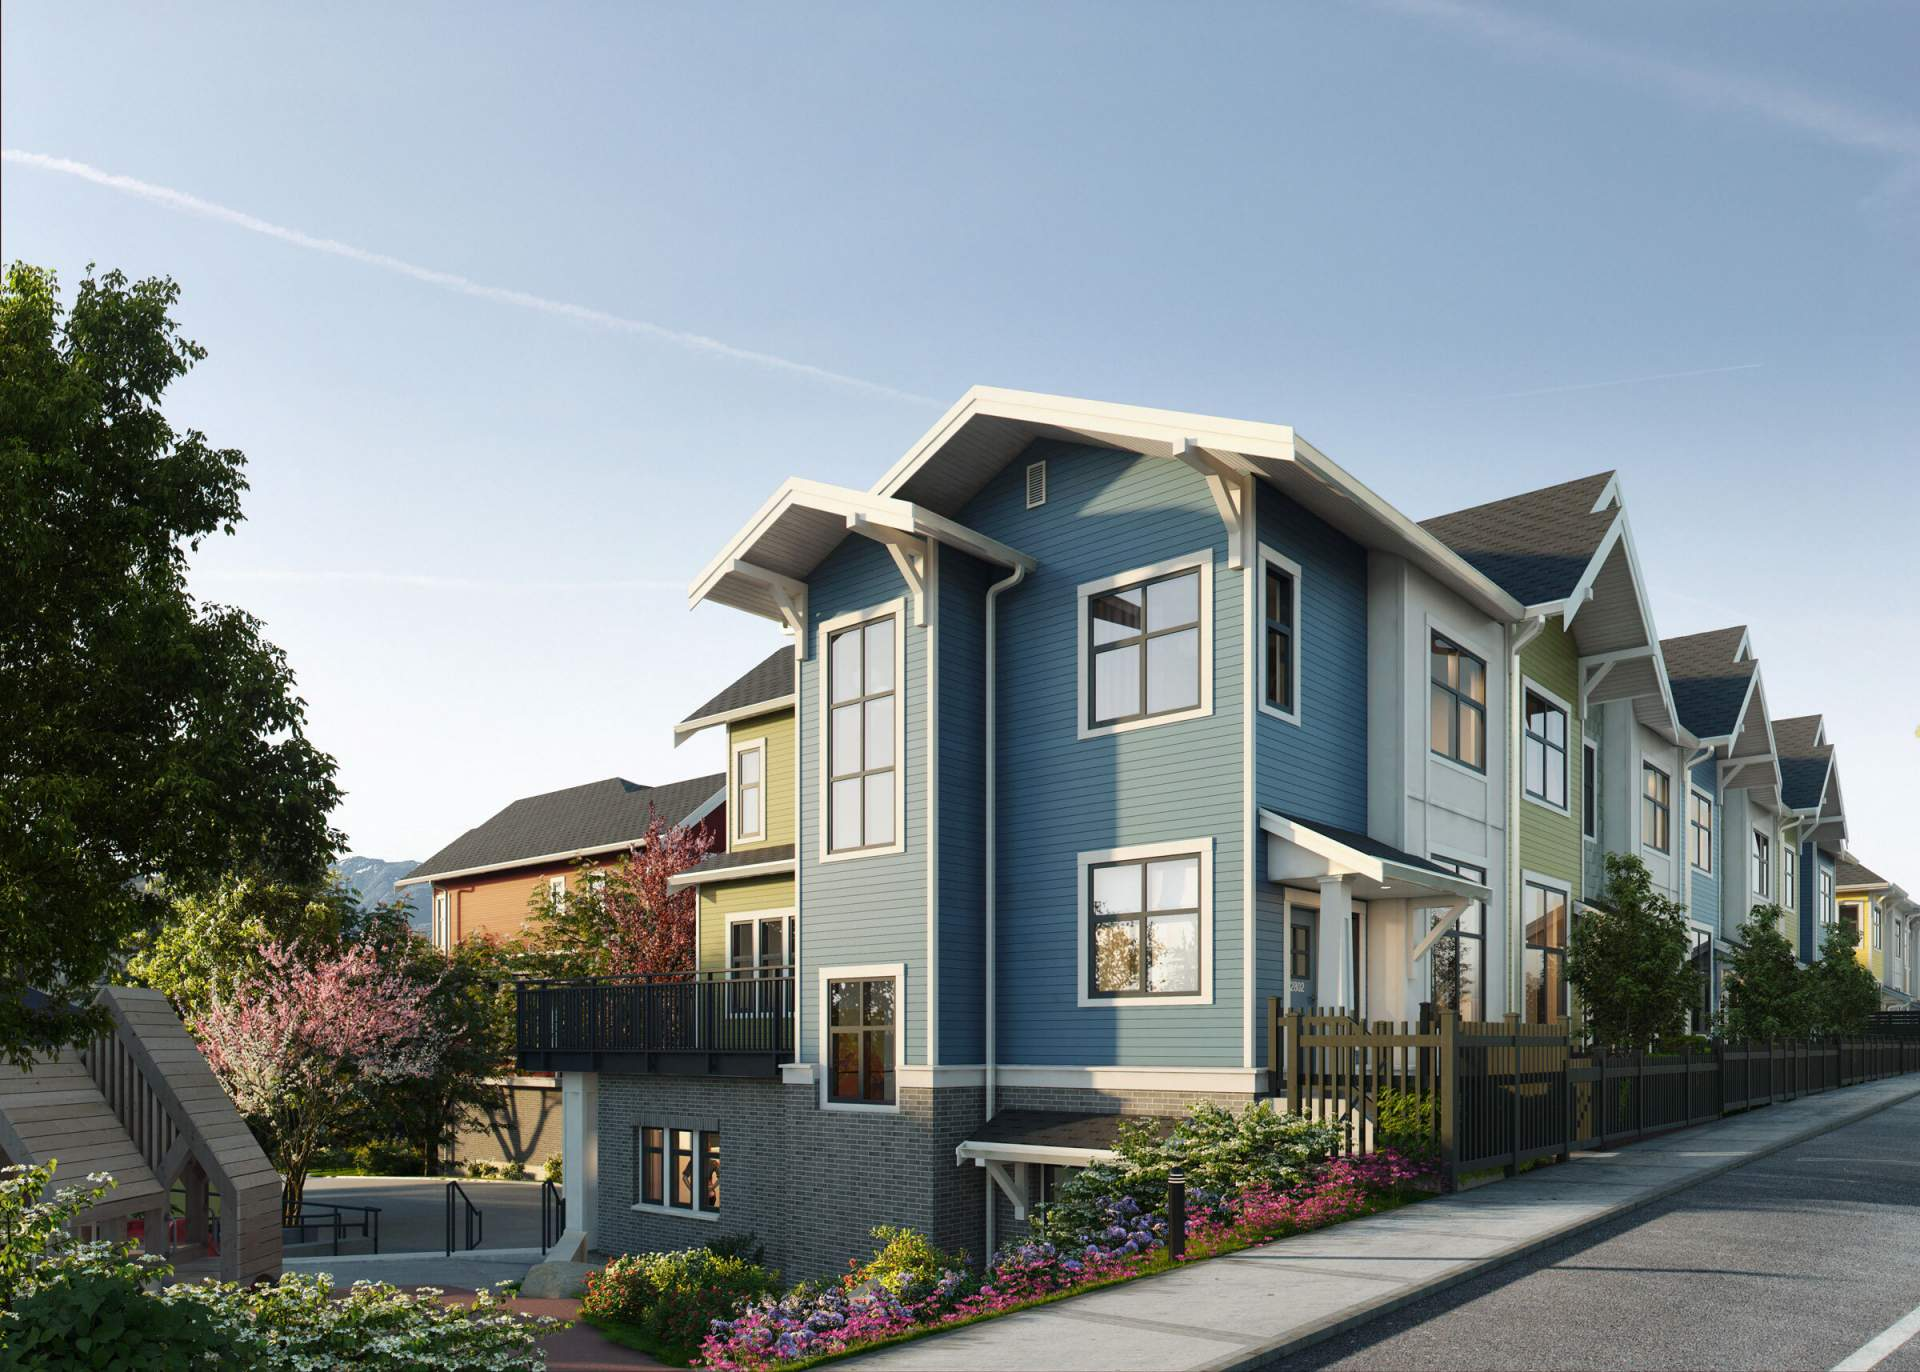 Will Townhomes By Marcon – Plans, Prices, Availability